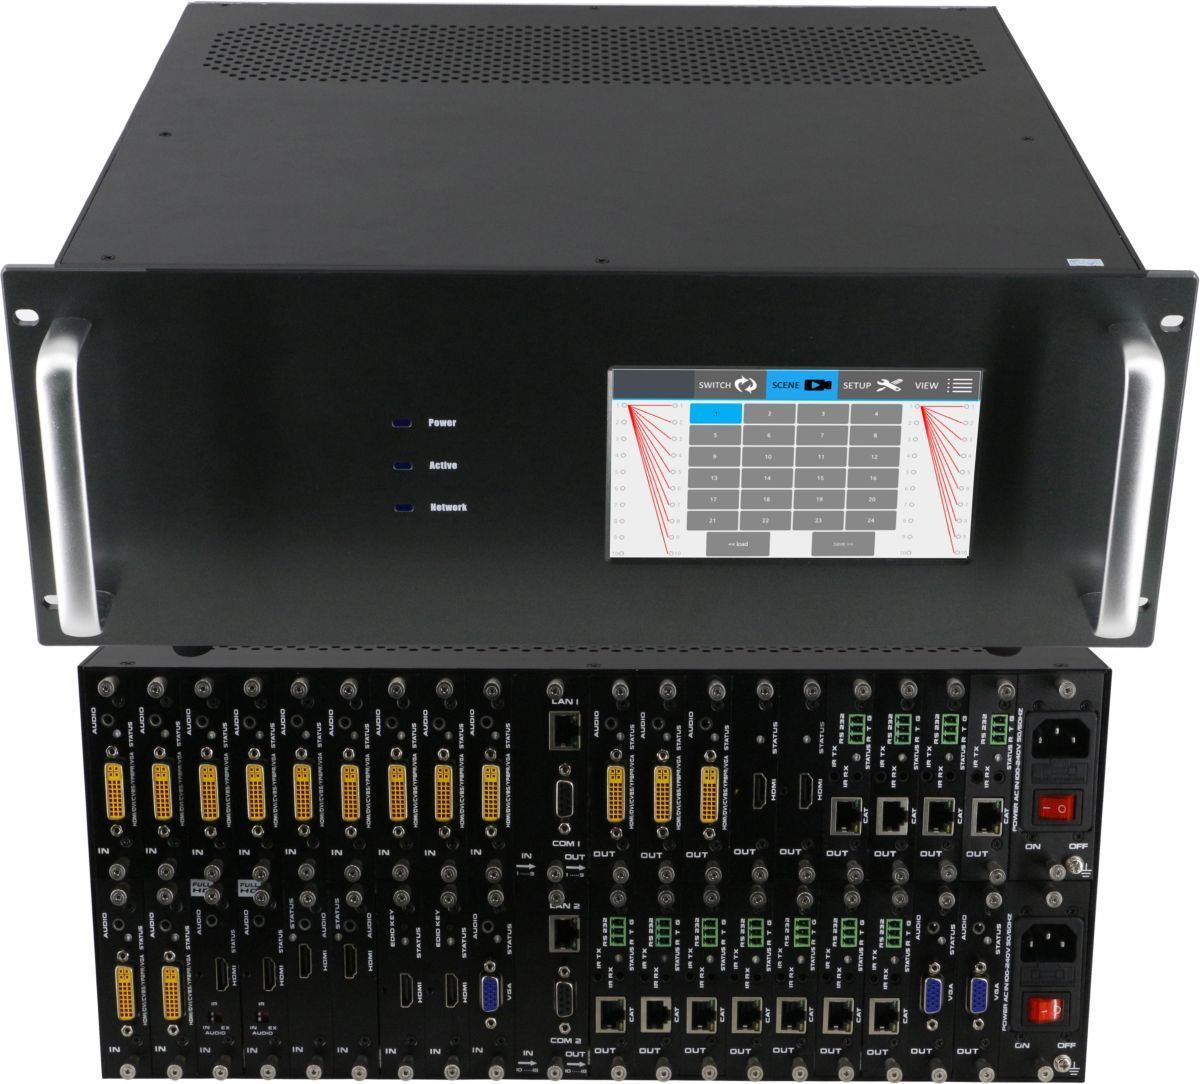 4K 4x10 HDMI Matrix Switcher with Color Touchscreen